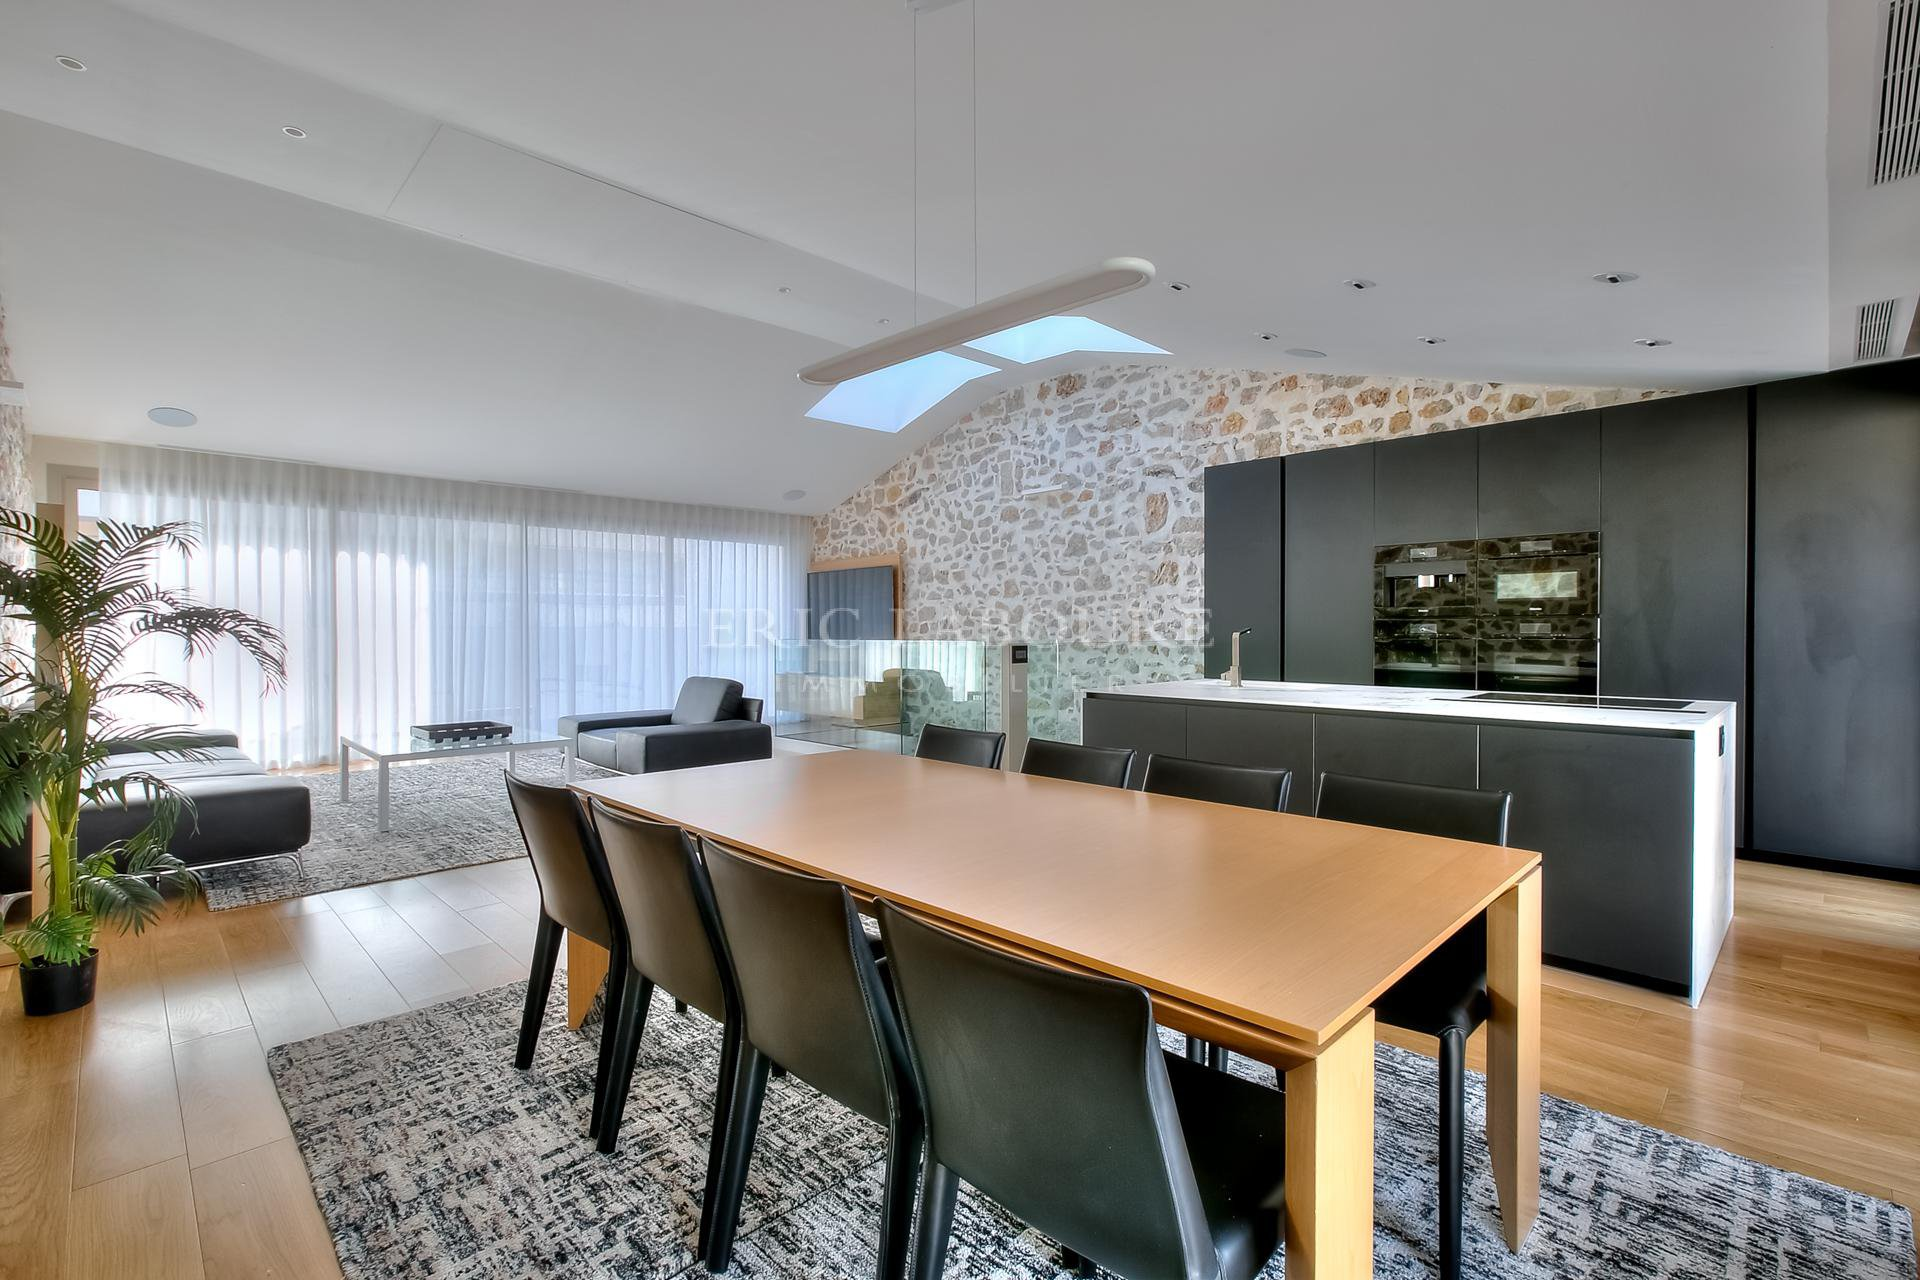 Ceiling fan, natural light, kitchen bar